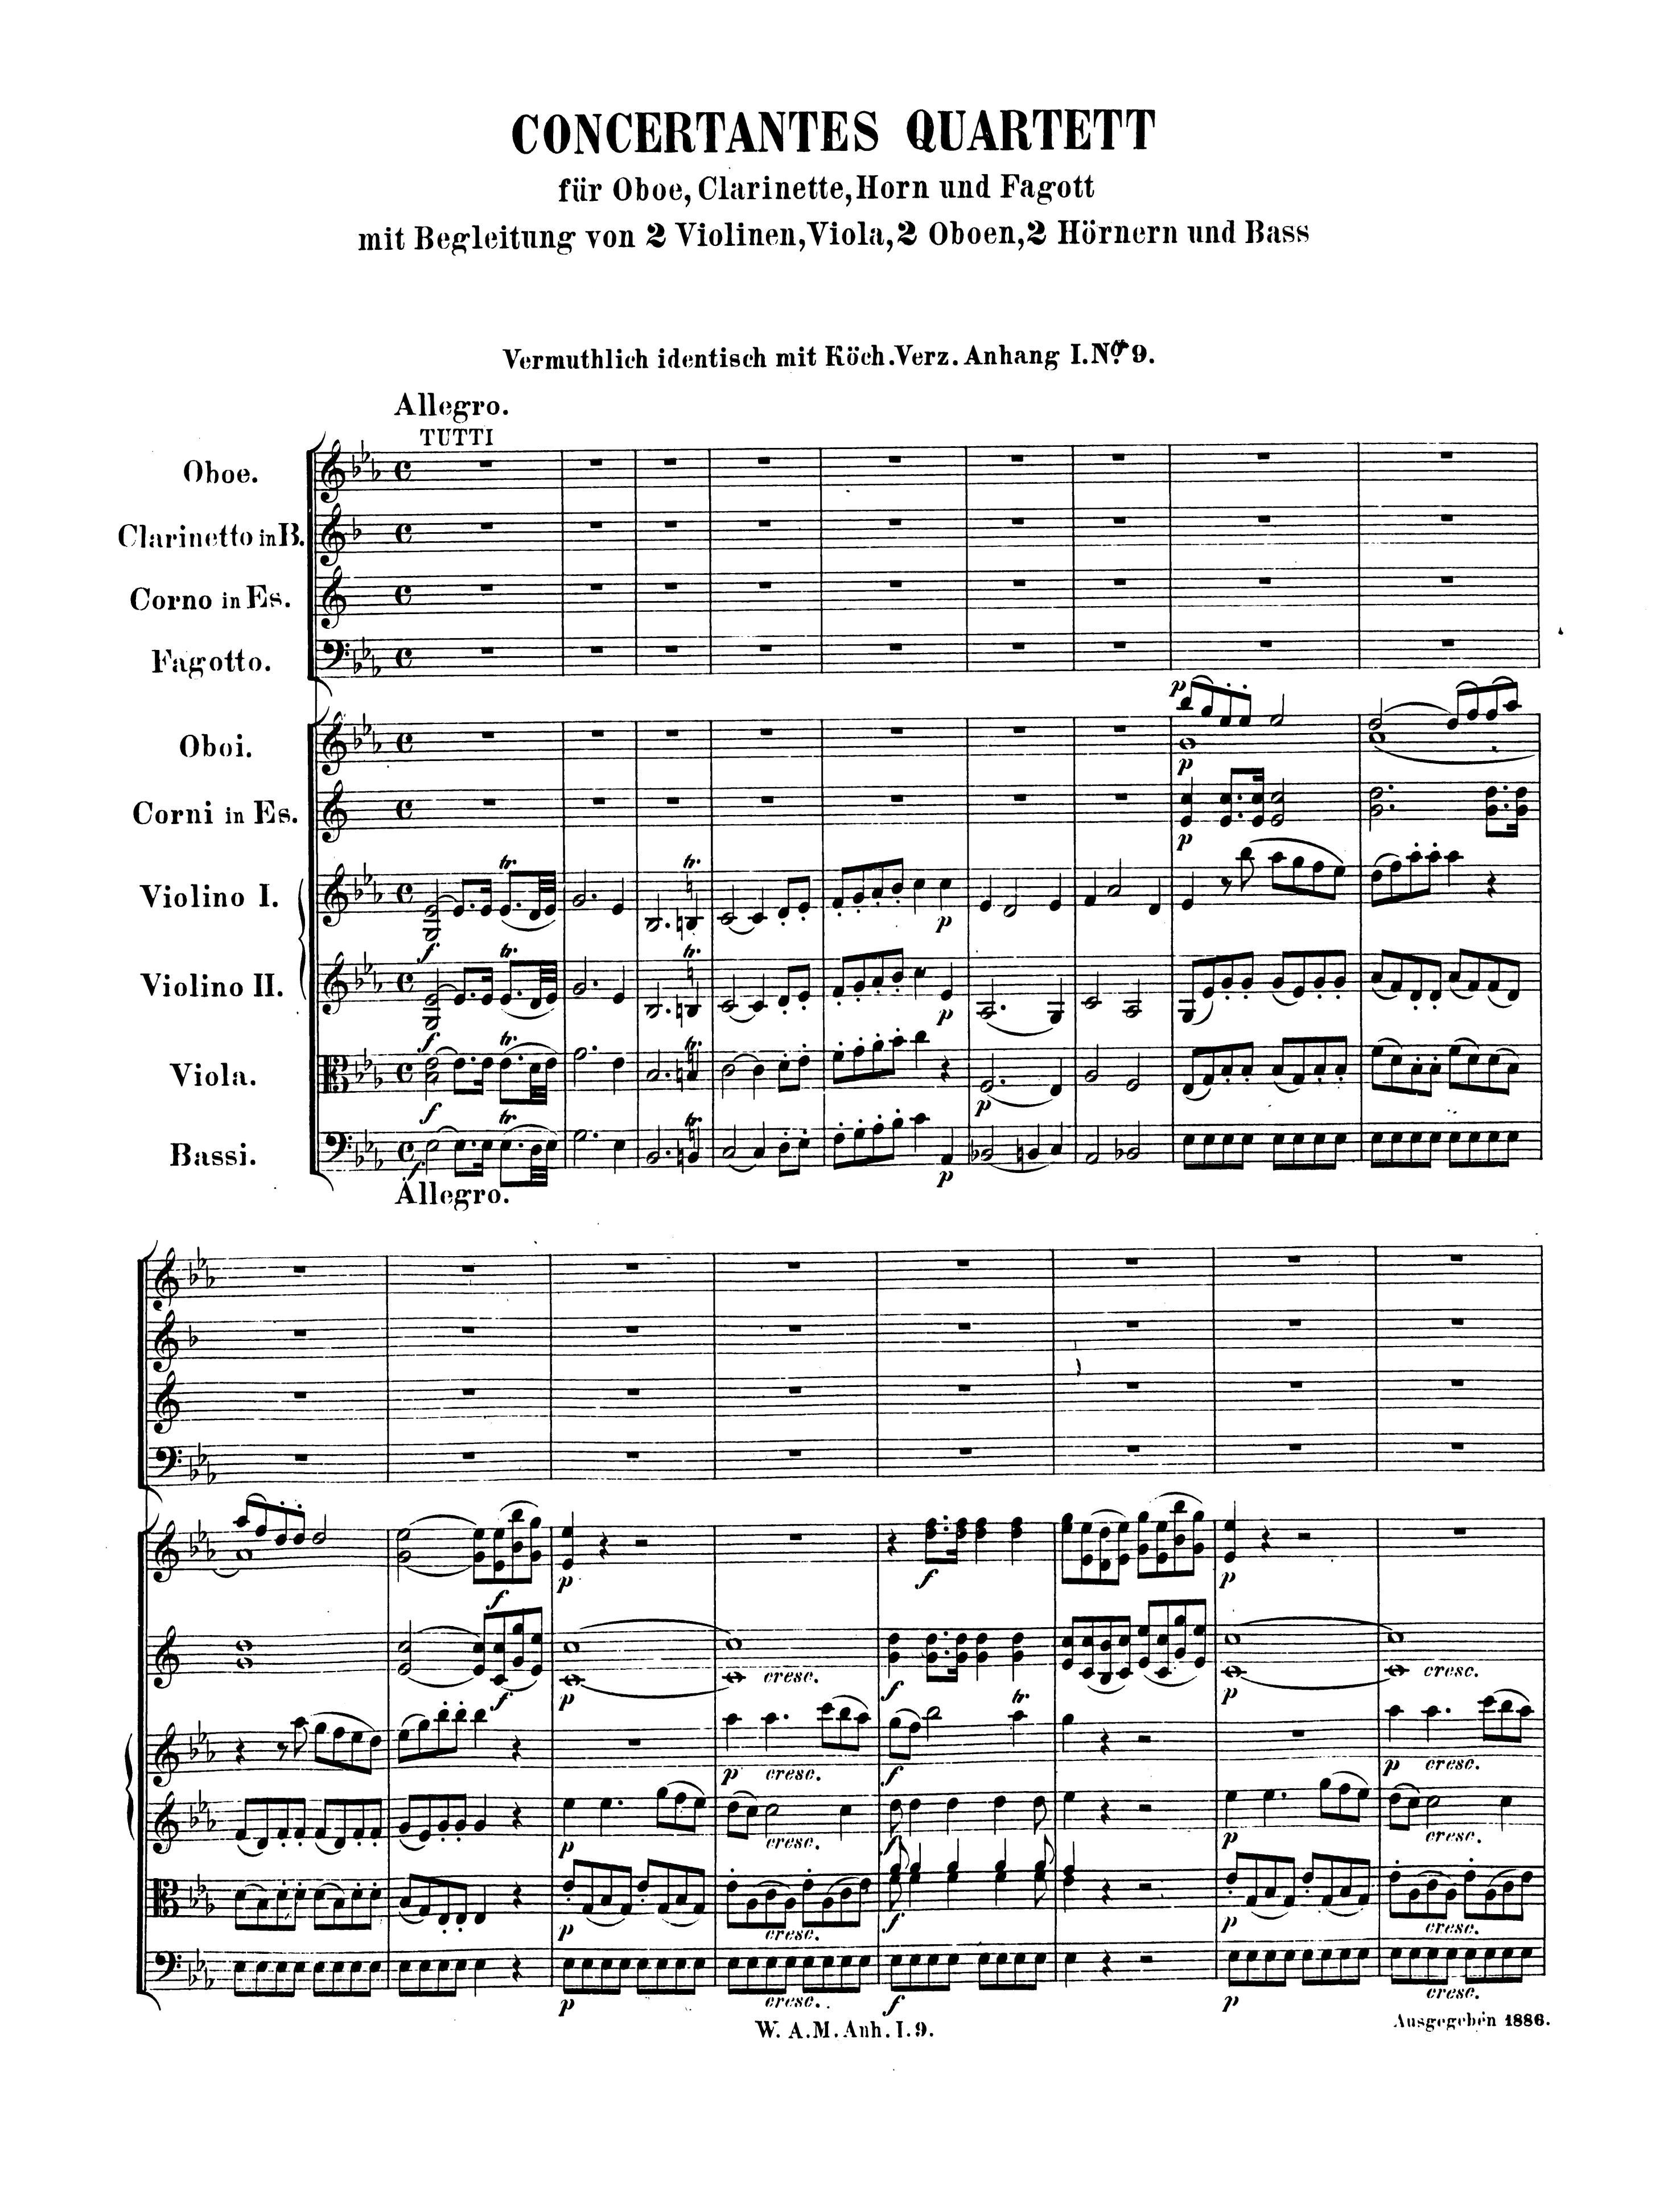 Sinfonia Concertante for Four Winds - Wikipedia